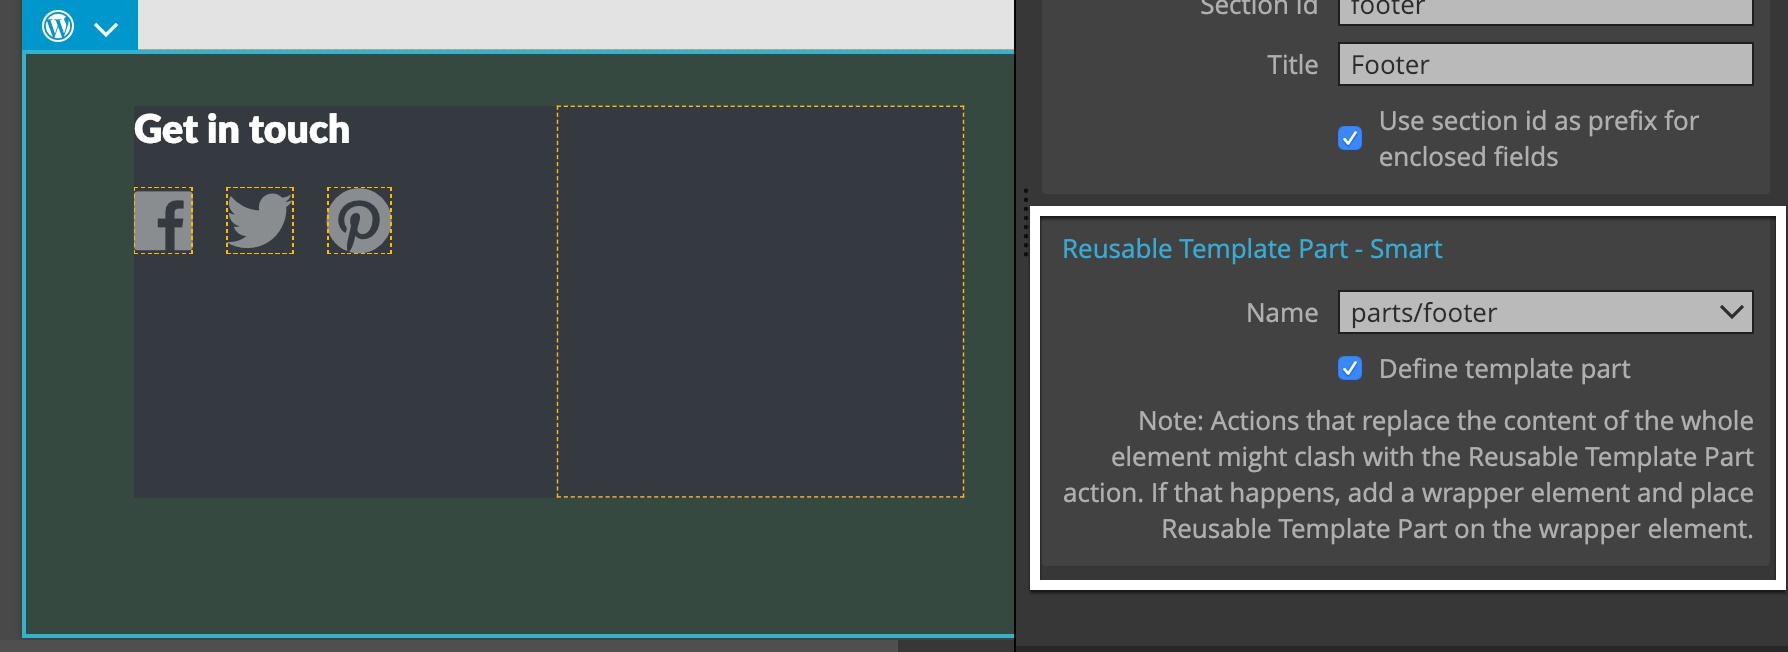 Defining a template part for the footer.